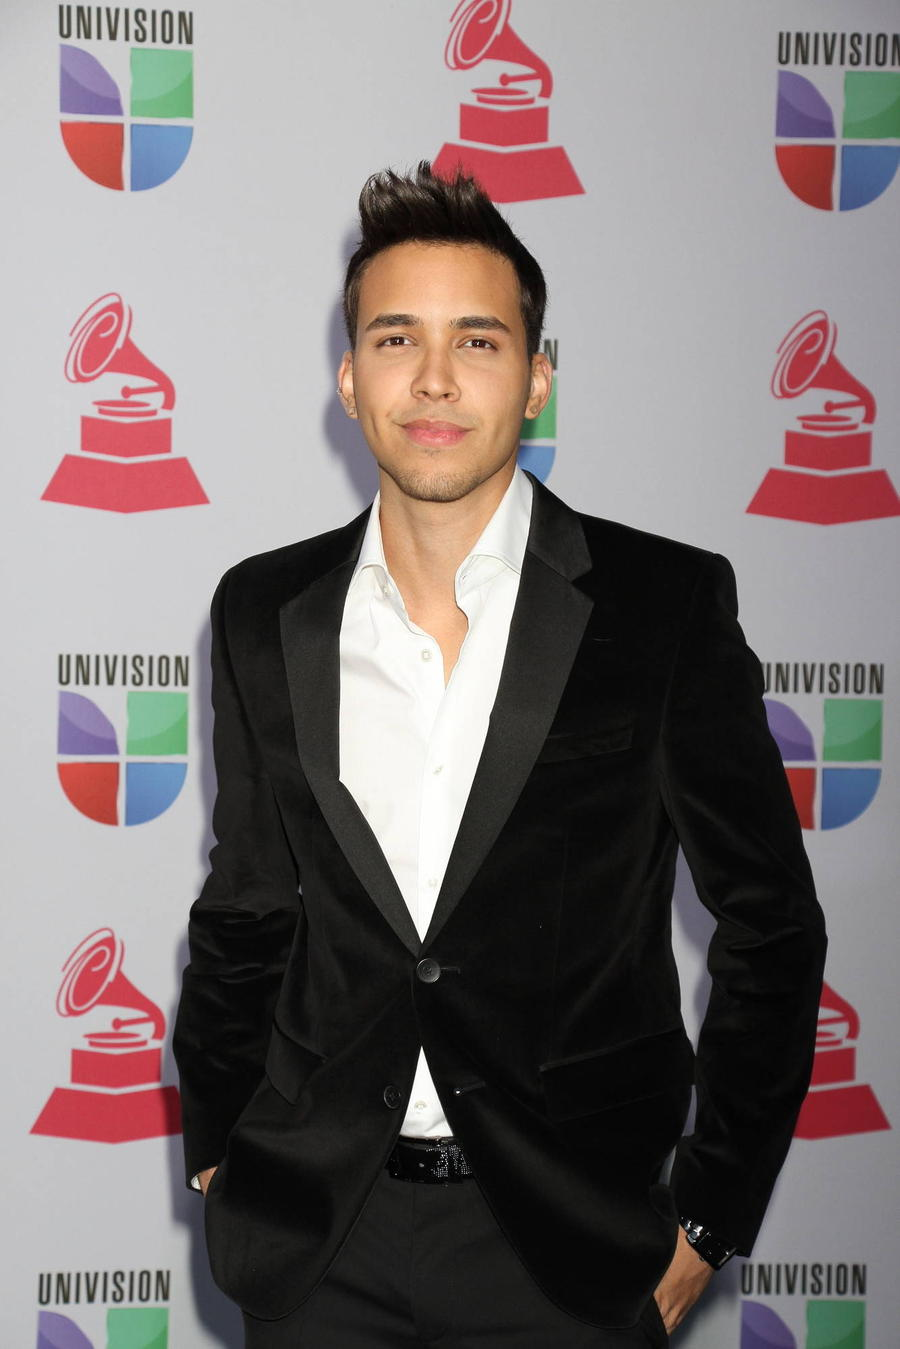 Prince Royce Shops For His Own Suit For Latin Grammys